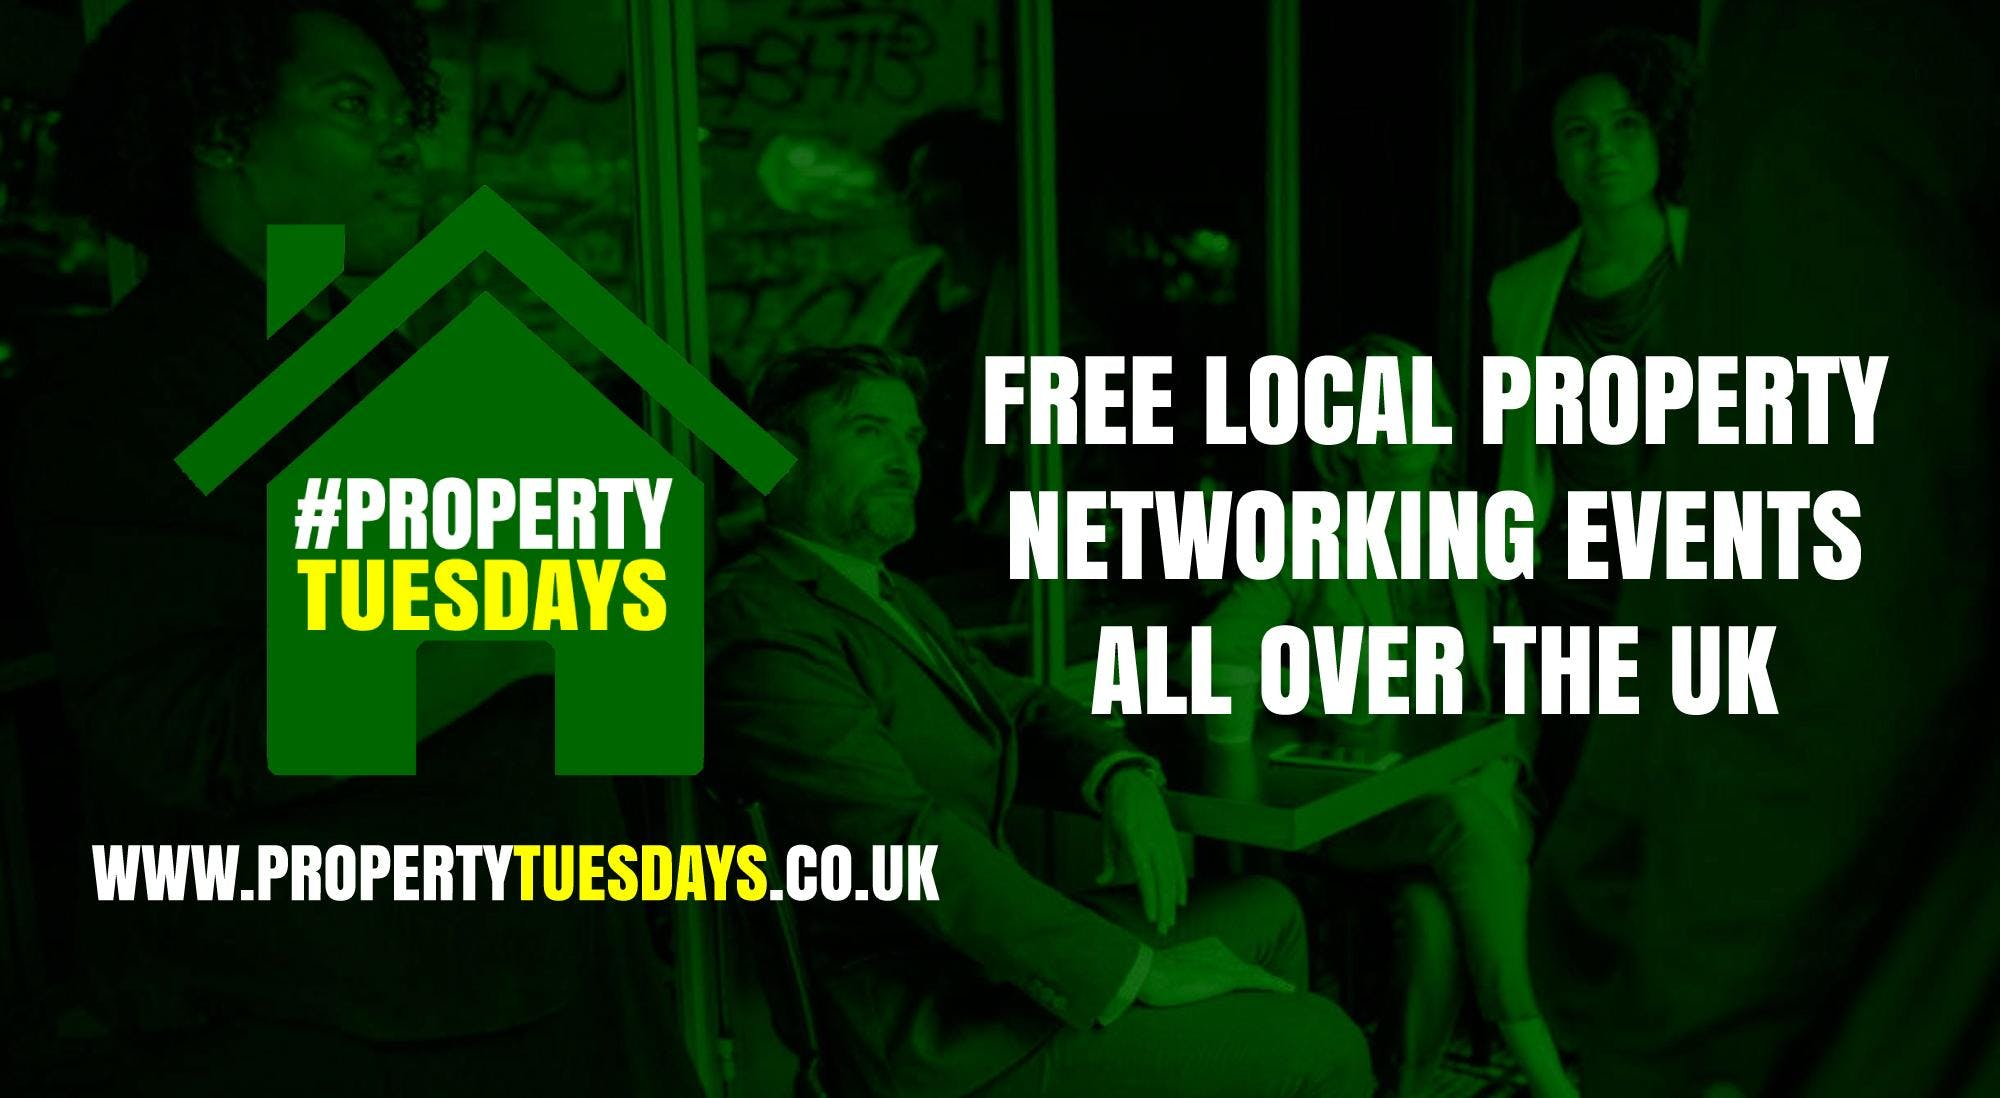 Property Tuesdays! Free property networking event in New Brighton